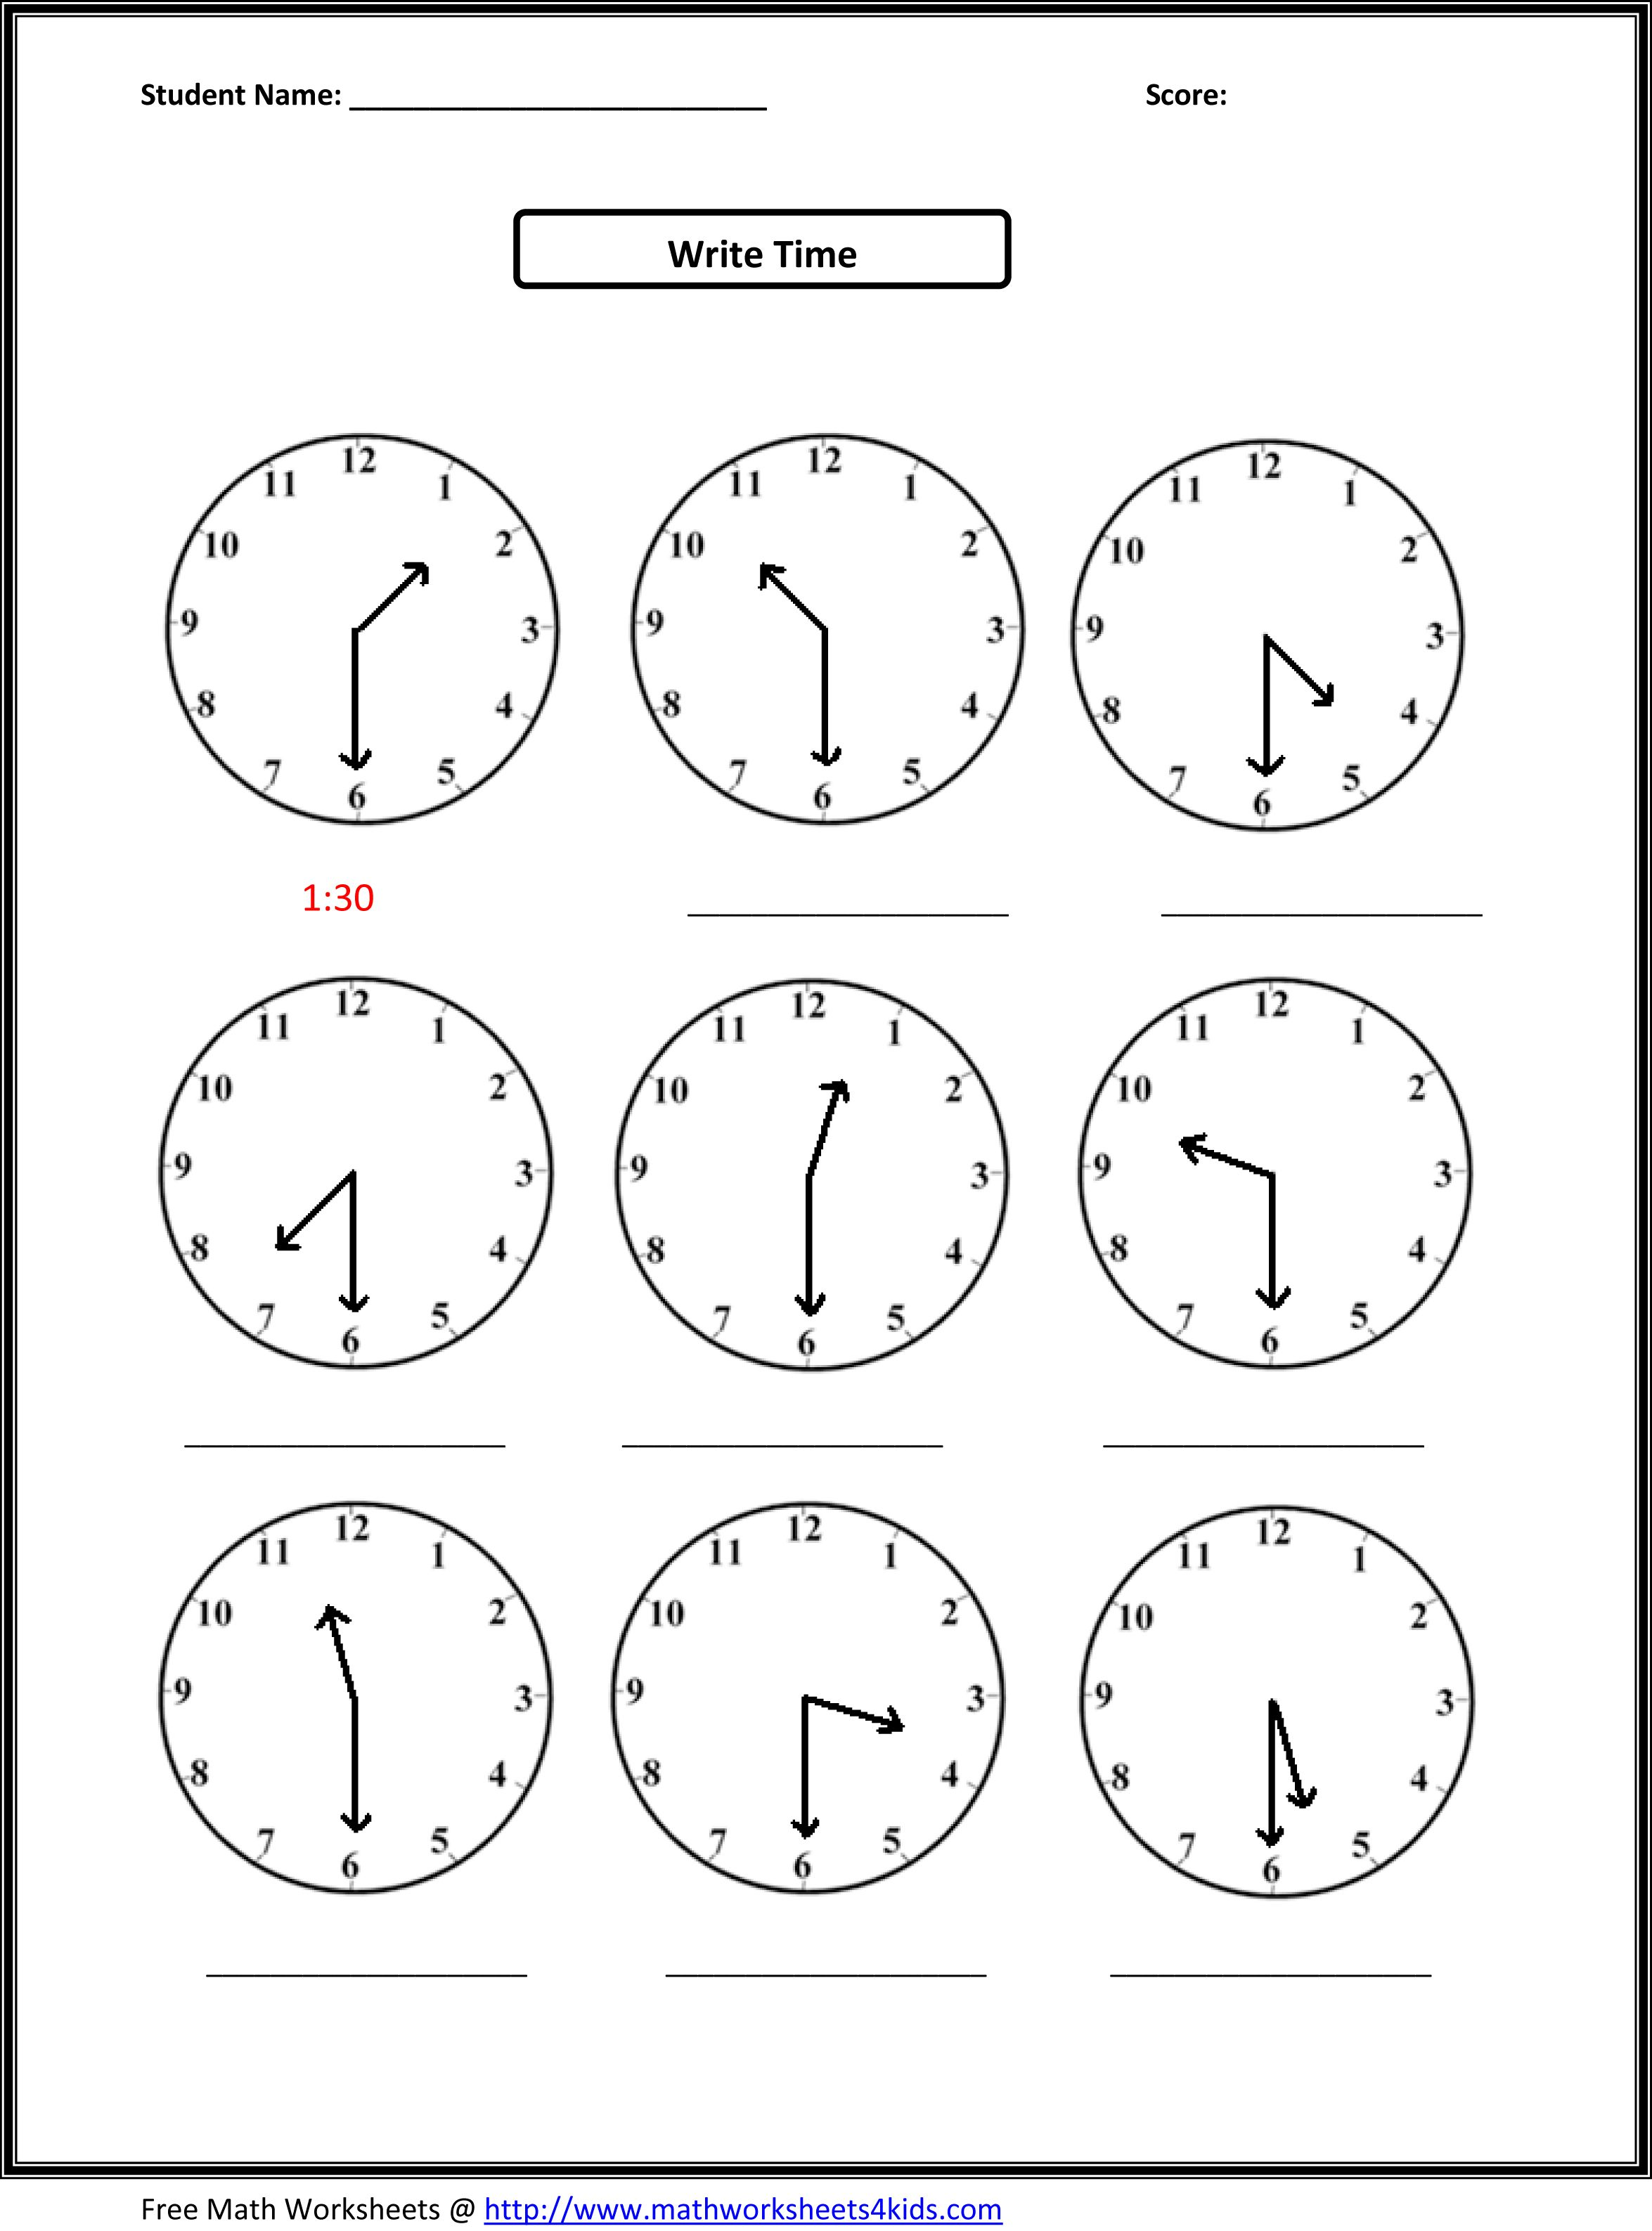 Weirdmailus  Unusual Worksheet On Time For Grade   Reocurent With Foxy Free Printable Telling Time Worksheets Nd Grade  Reocurent With Cute Problem Solving Strategies Worksheet Also St Day Of School Worksheets In Addition Math Worksheet Grade  And Multi Meaning Words Worksheet As Well As  Tax Computation Worksheet Additionally Adding And Subtracting Rational Expressions Worksheets From Reocurentcom With Weirdmailus  Foxy Worksheet On Time For Grade   Reocurent With Cute Free Printable Telling Time Worksheets Nd Grade  Reocurent And Unusual Problem Solving Strategies Worksheet Also St Day Of School Worksheets In Addition Math Worksheet Grade  From Reocurentcom